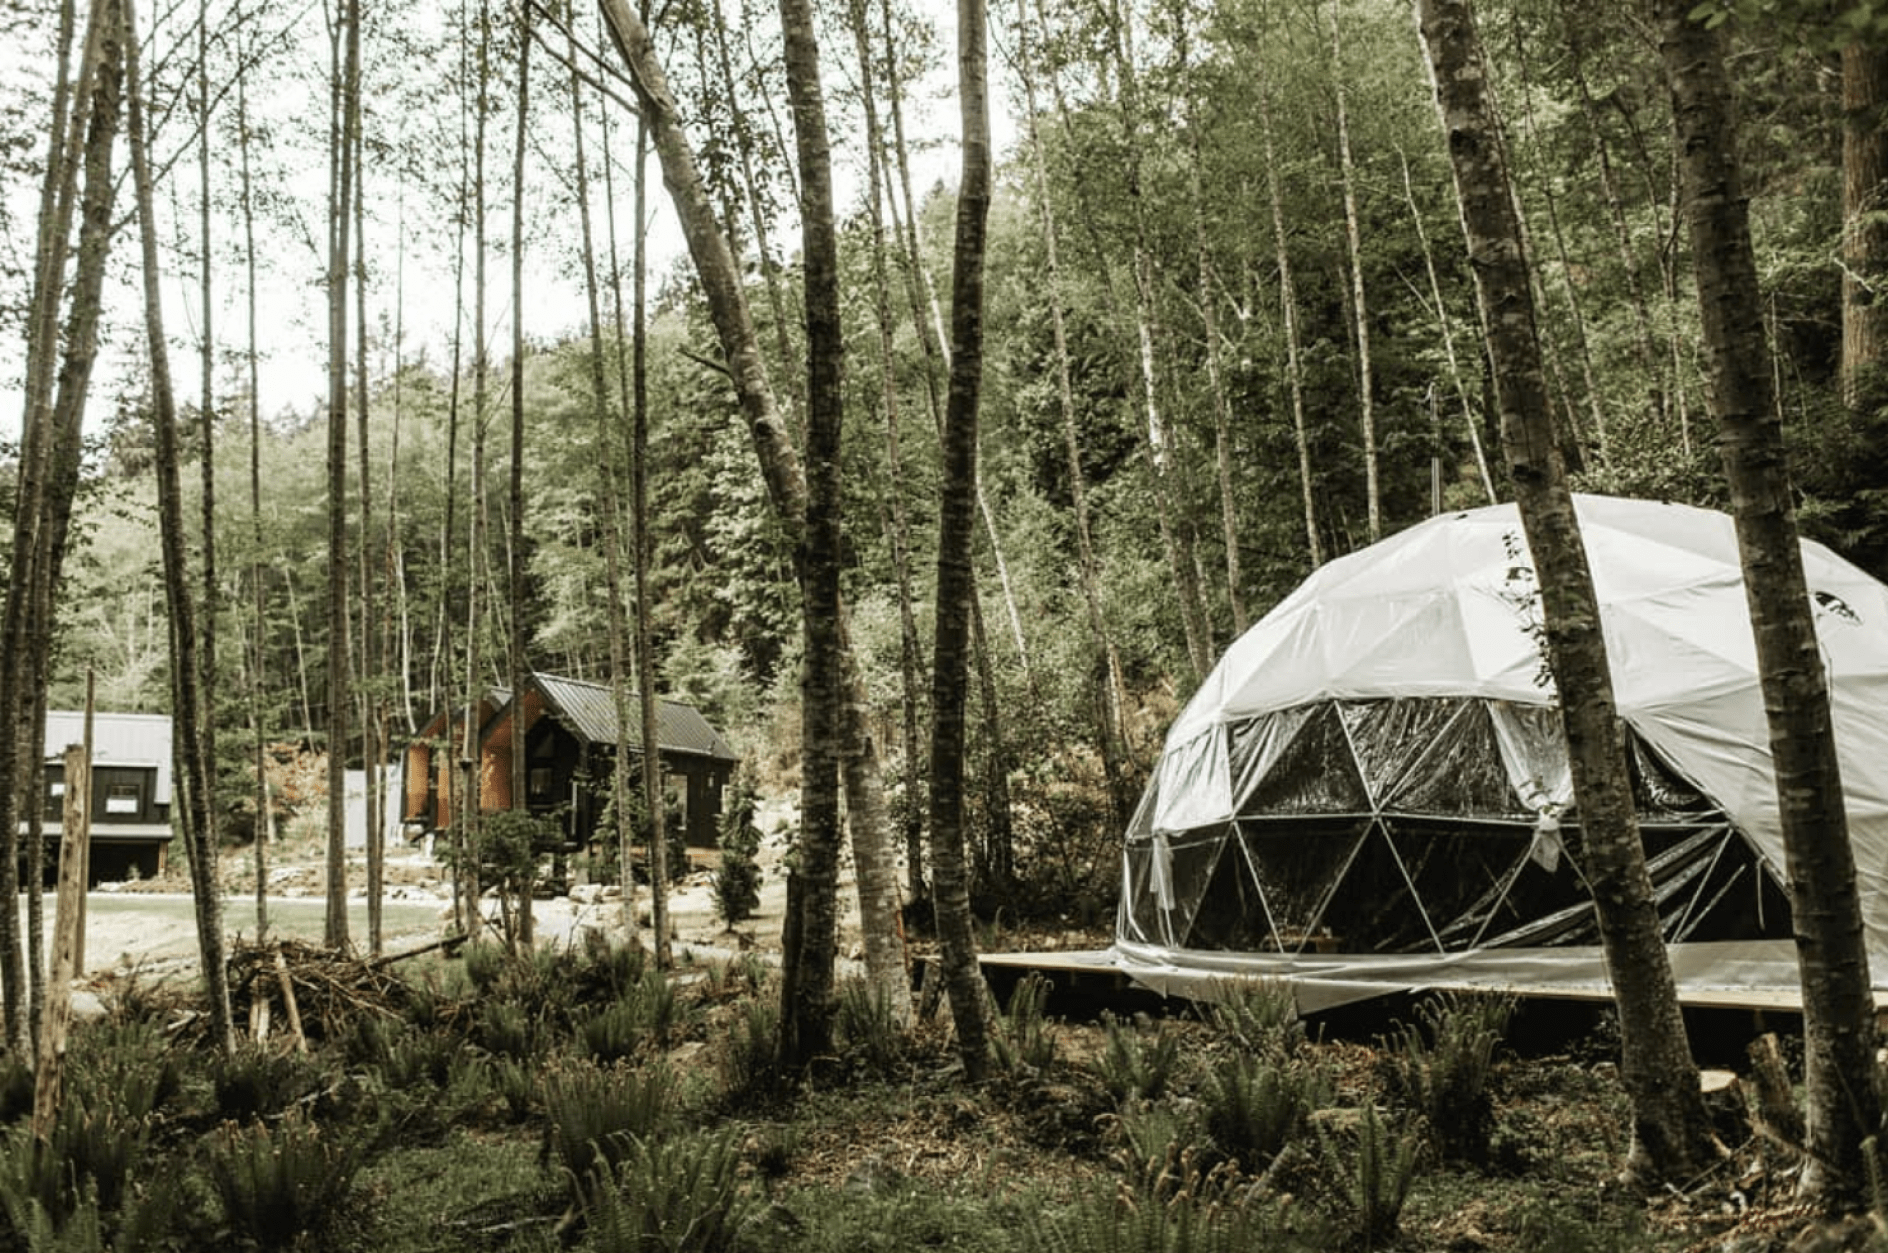 Dome tent in woods